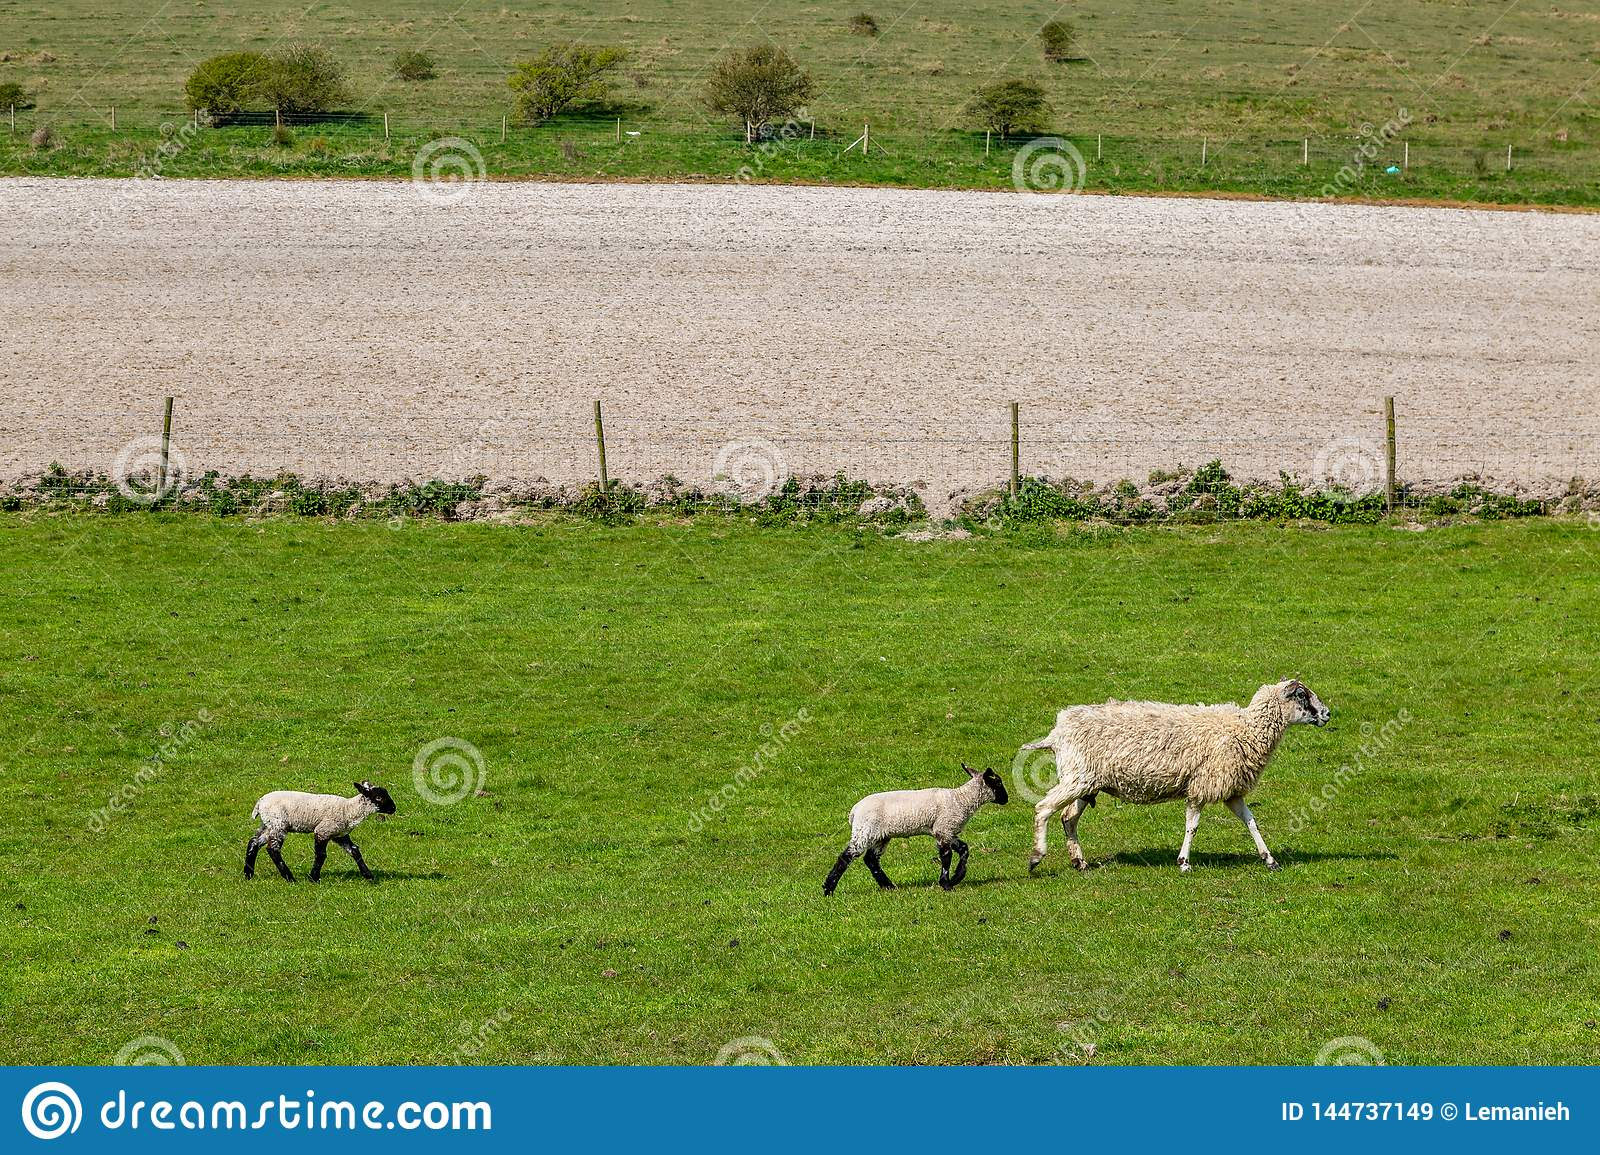 A Ewe and her Babies